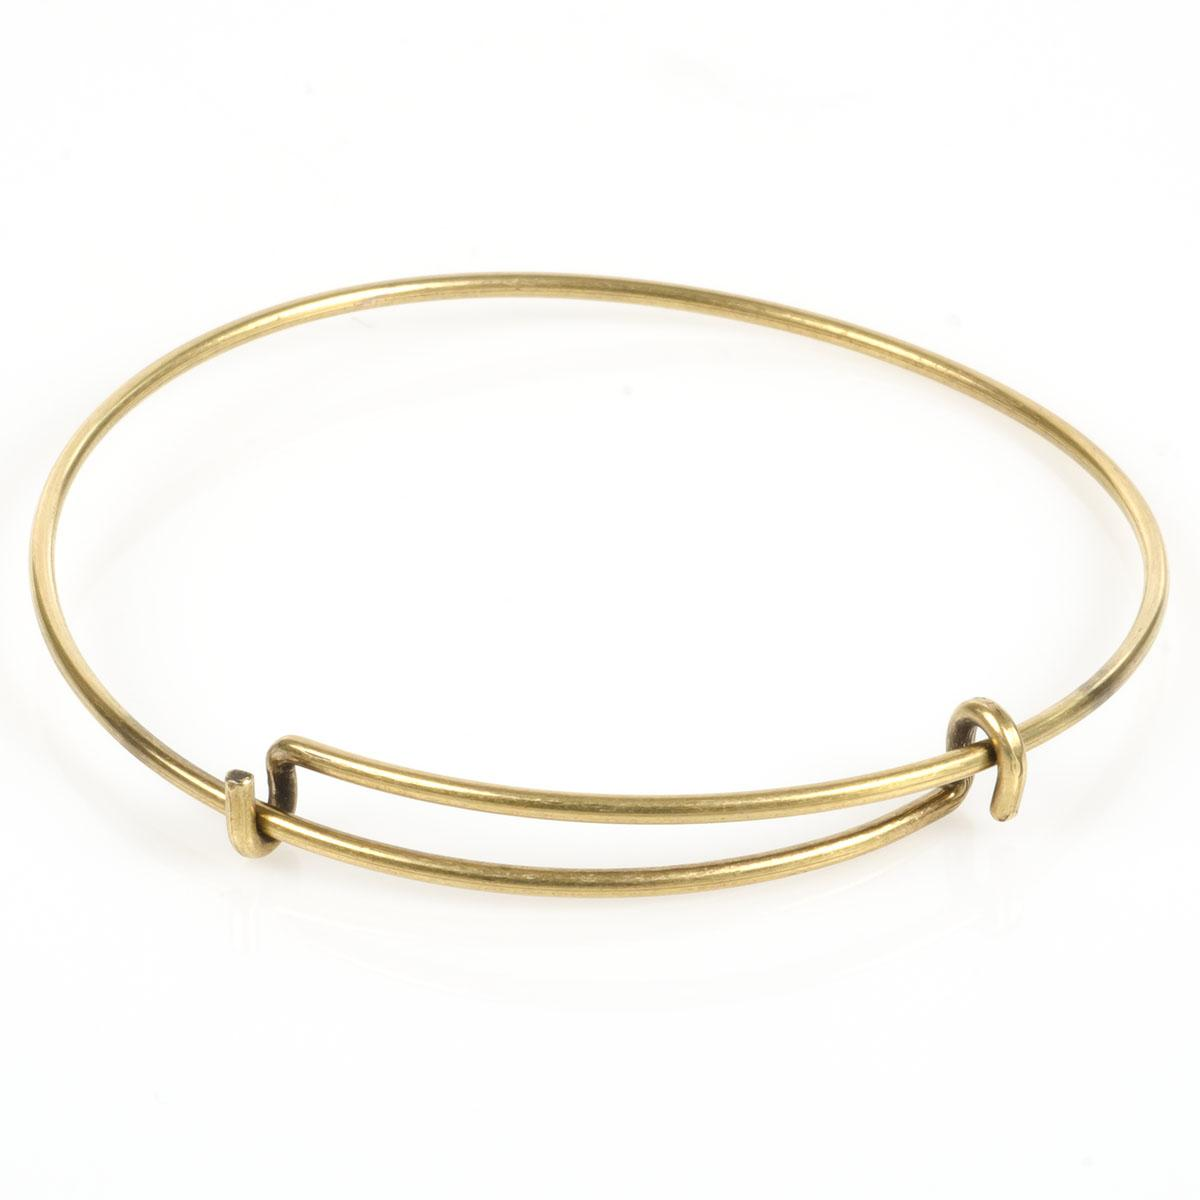 Steel Wire Adjustable Bracelet with Double Loop - White Plated